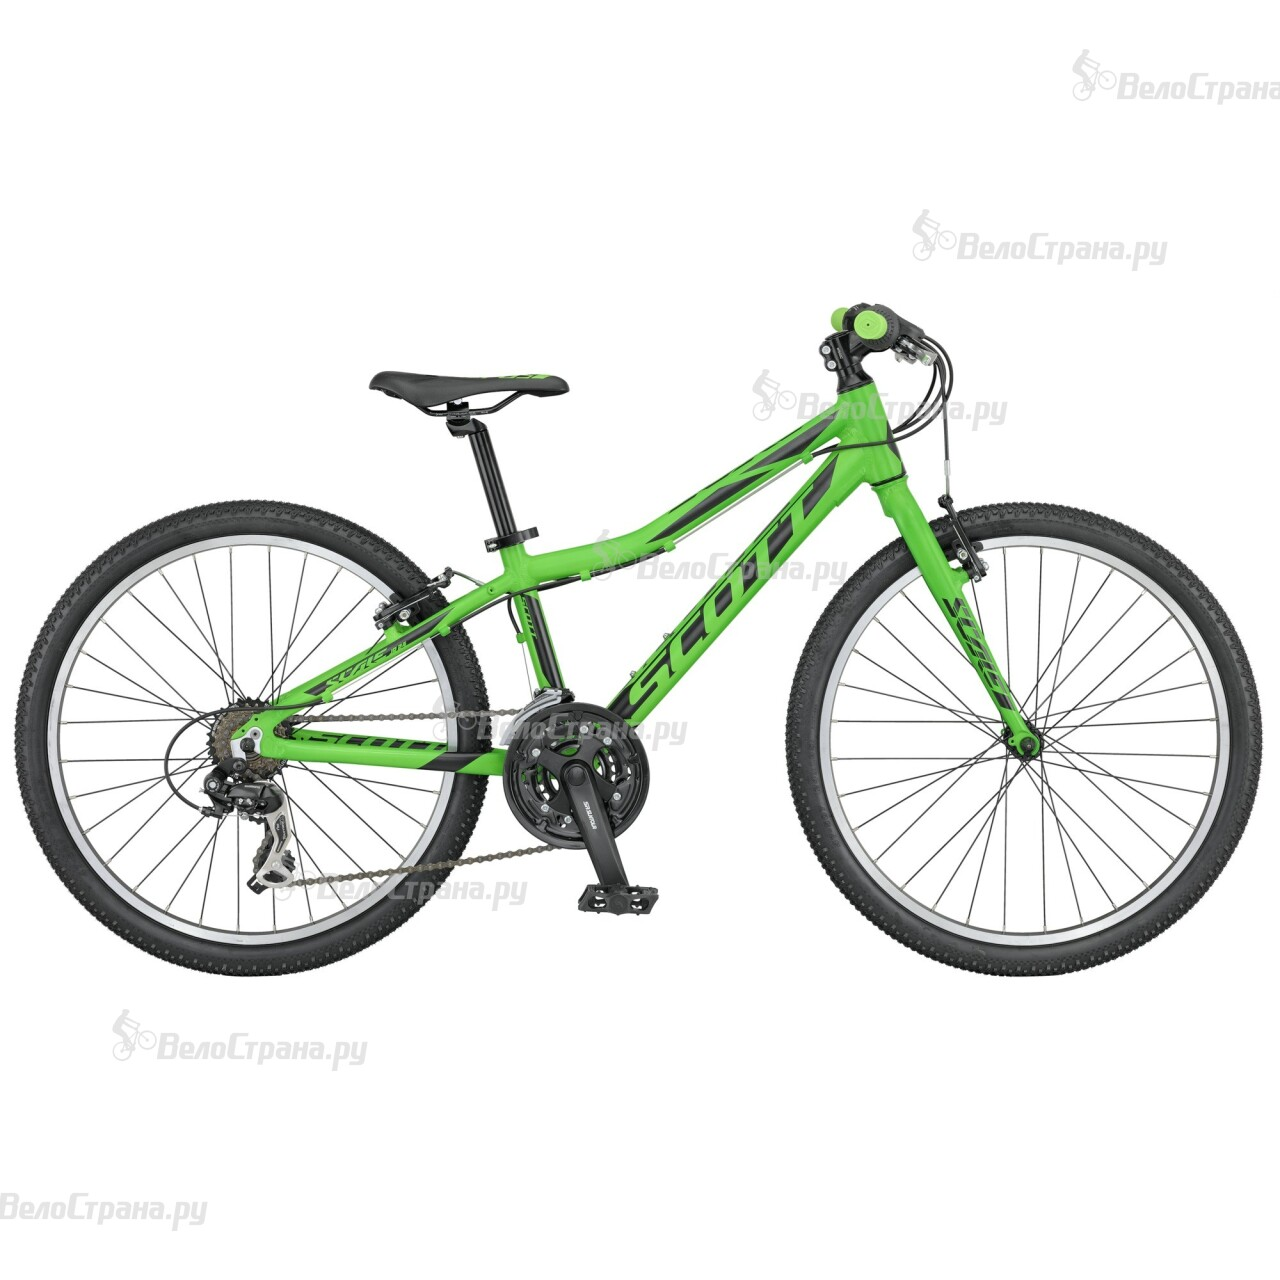 Велосипед Scott Scale Junior 24 rigid fork (2016) велосипед scott voltage junior 24 disc 24 2016